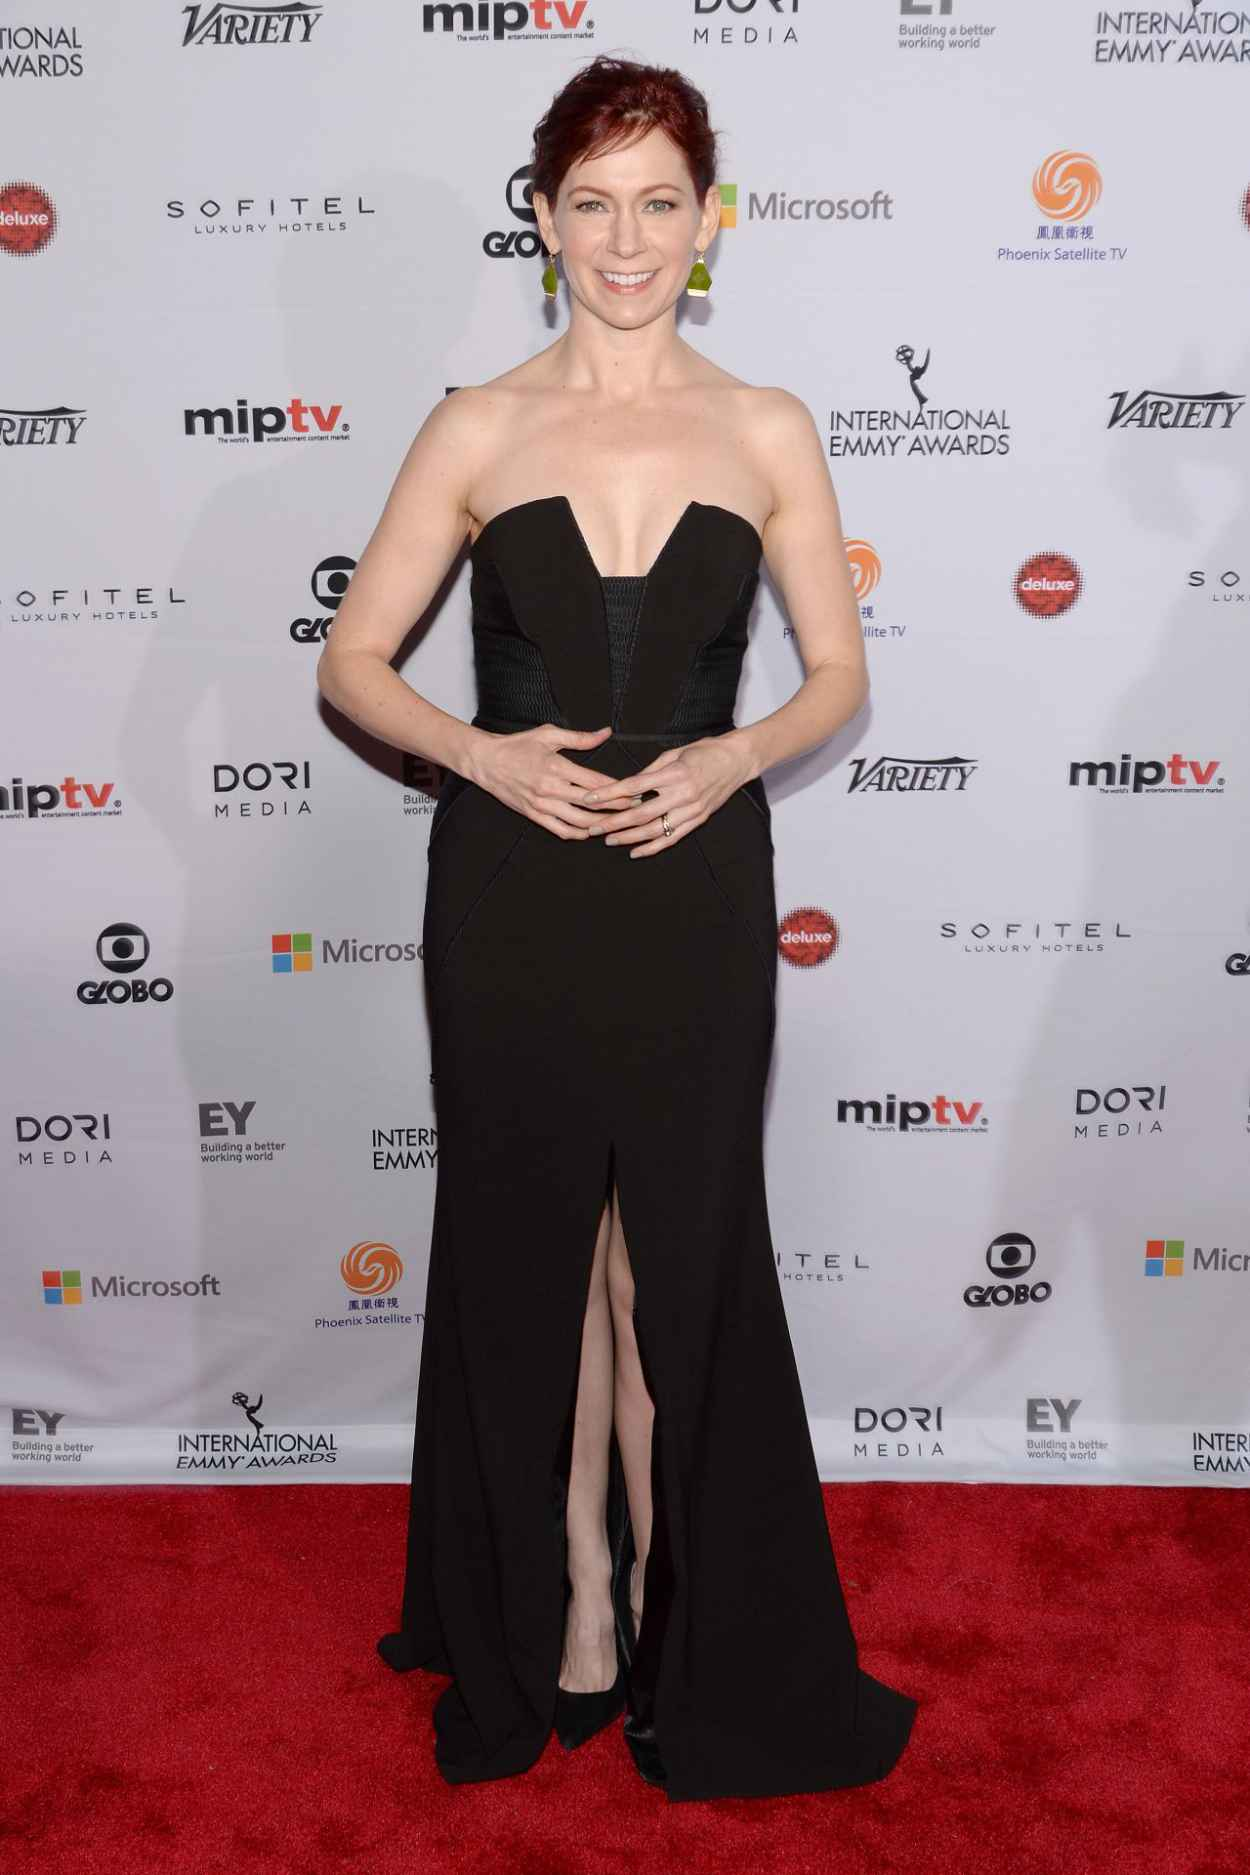 Carrie Preston - 2015 International Academy Of Television Arts & Sciences Emmy Awards in New York City-1